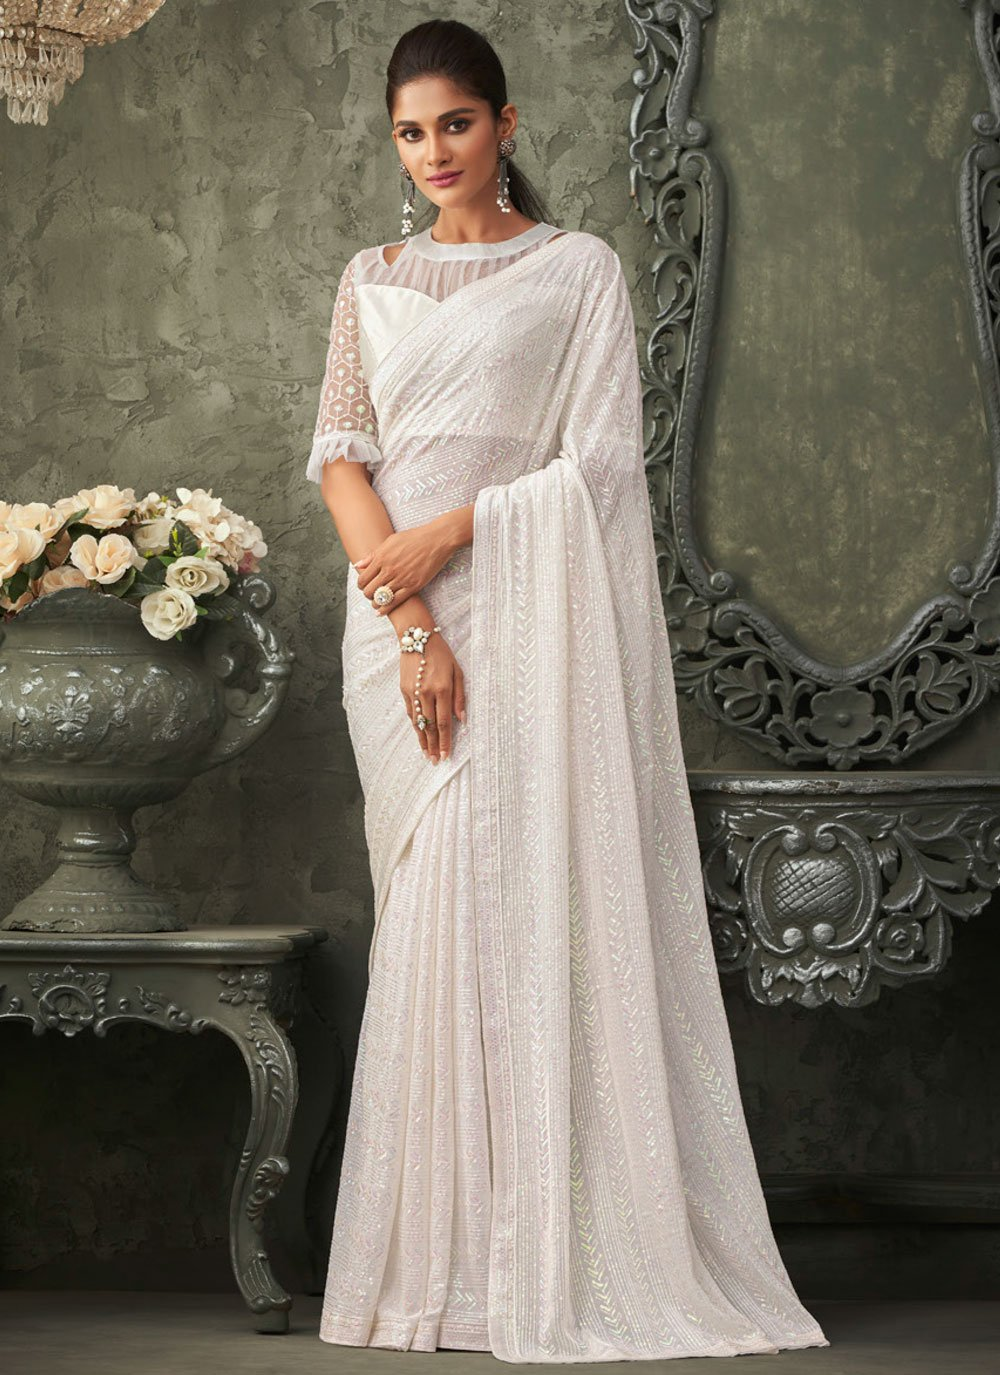 Embroidered White Bollywood Saree